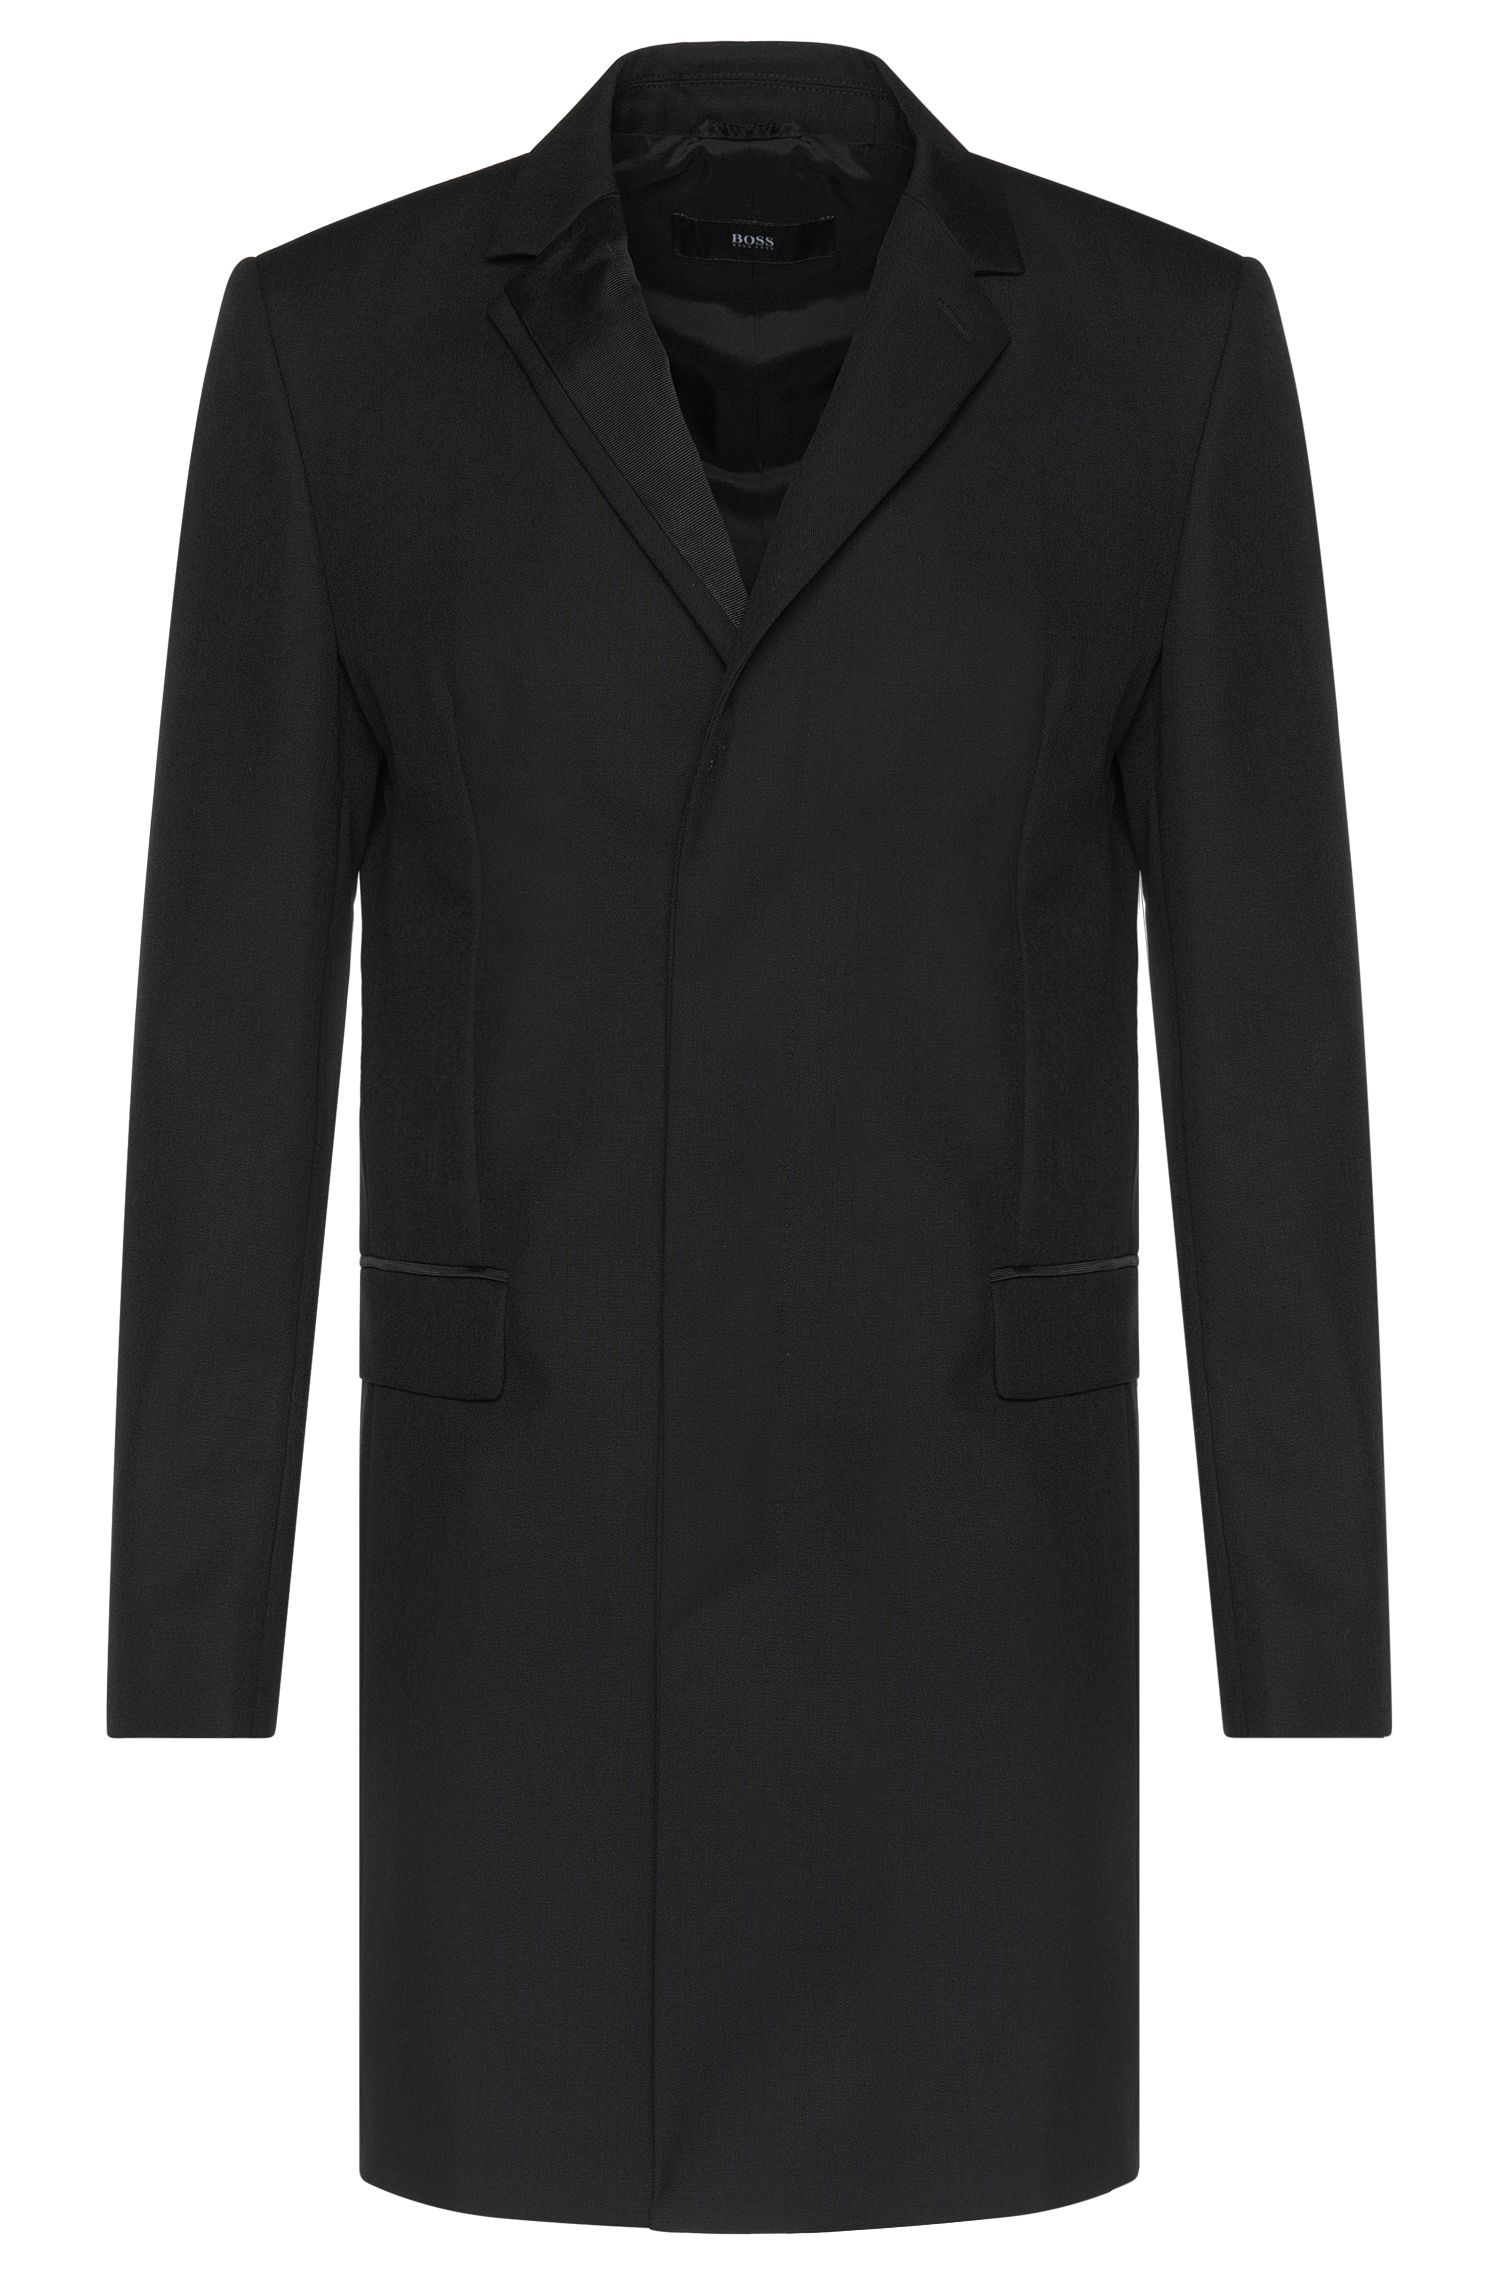 'Nabor' | Virgin Wool Mohair Grosgrain Detail Car Coat